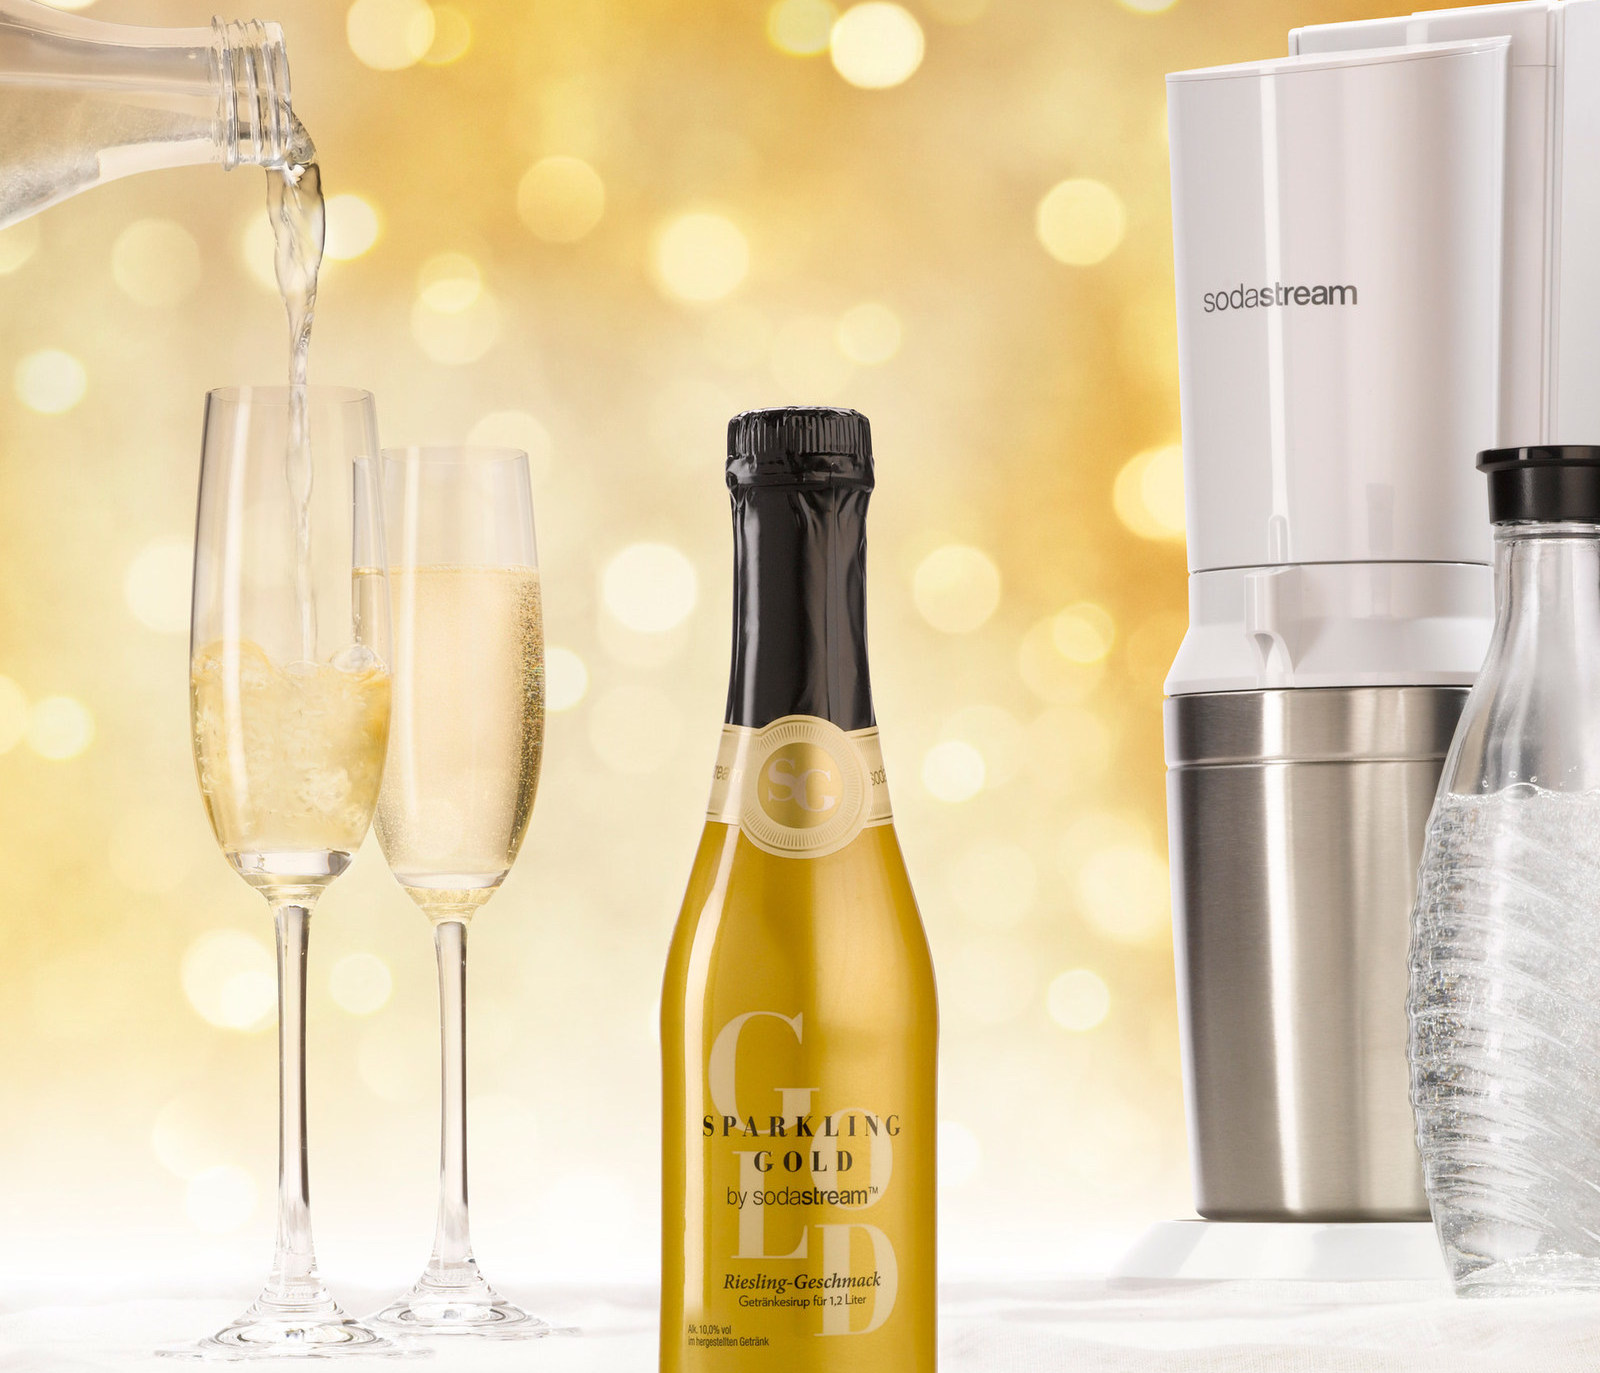 Sparkling Gold (PRNewsfoto/SodaStream International Ltd.)